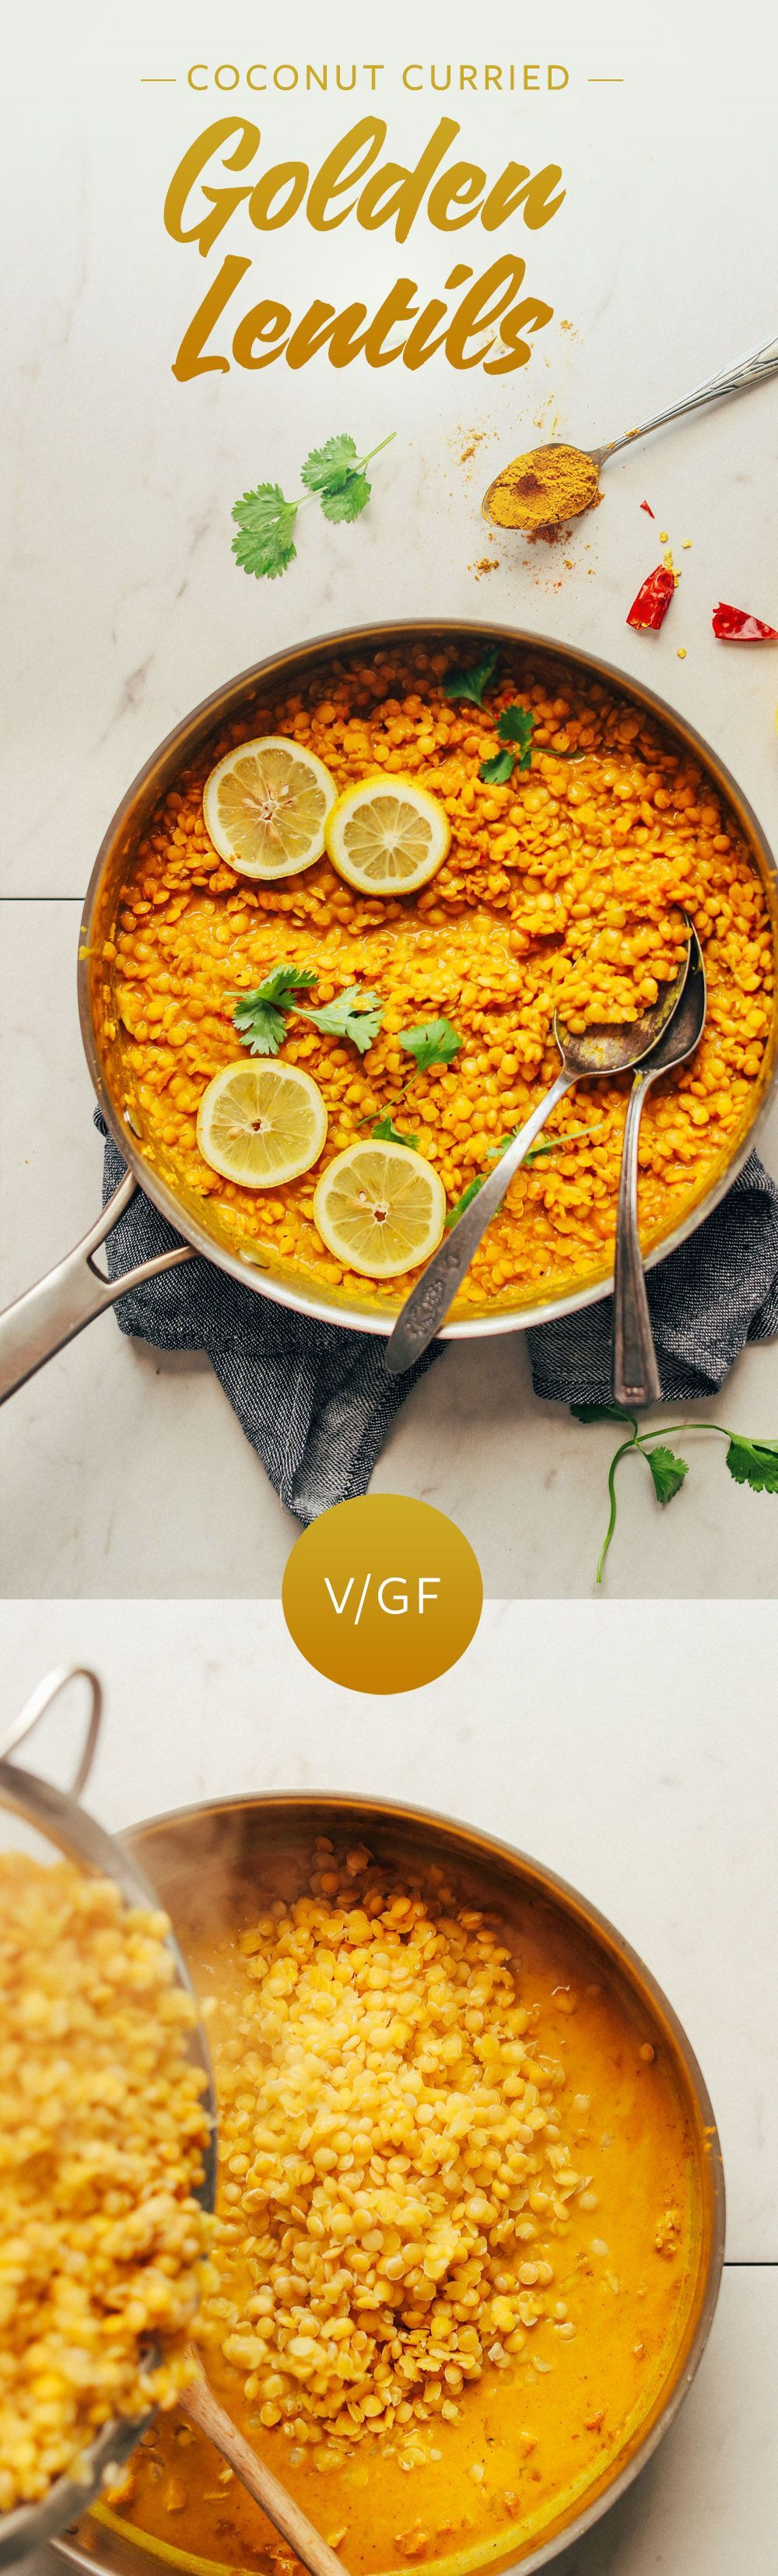 Coconut Curried Golden Lentils! 20 minutes, healthy, SO satisfying!AMAZING Coconut Curried Golden Lentils! 20 minutes, healthy, SO satisfying!